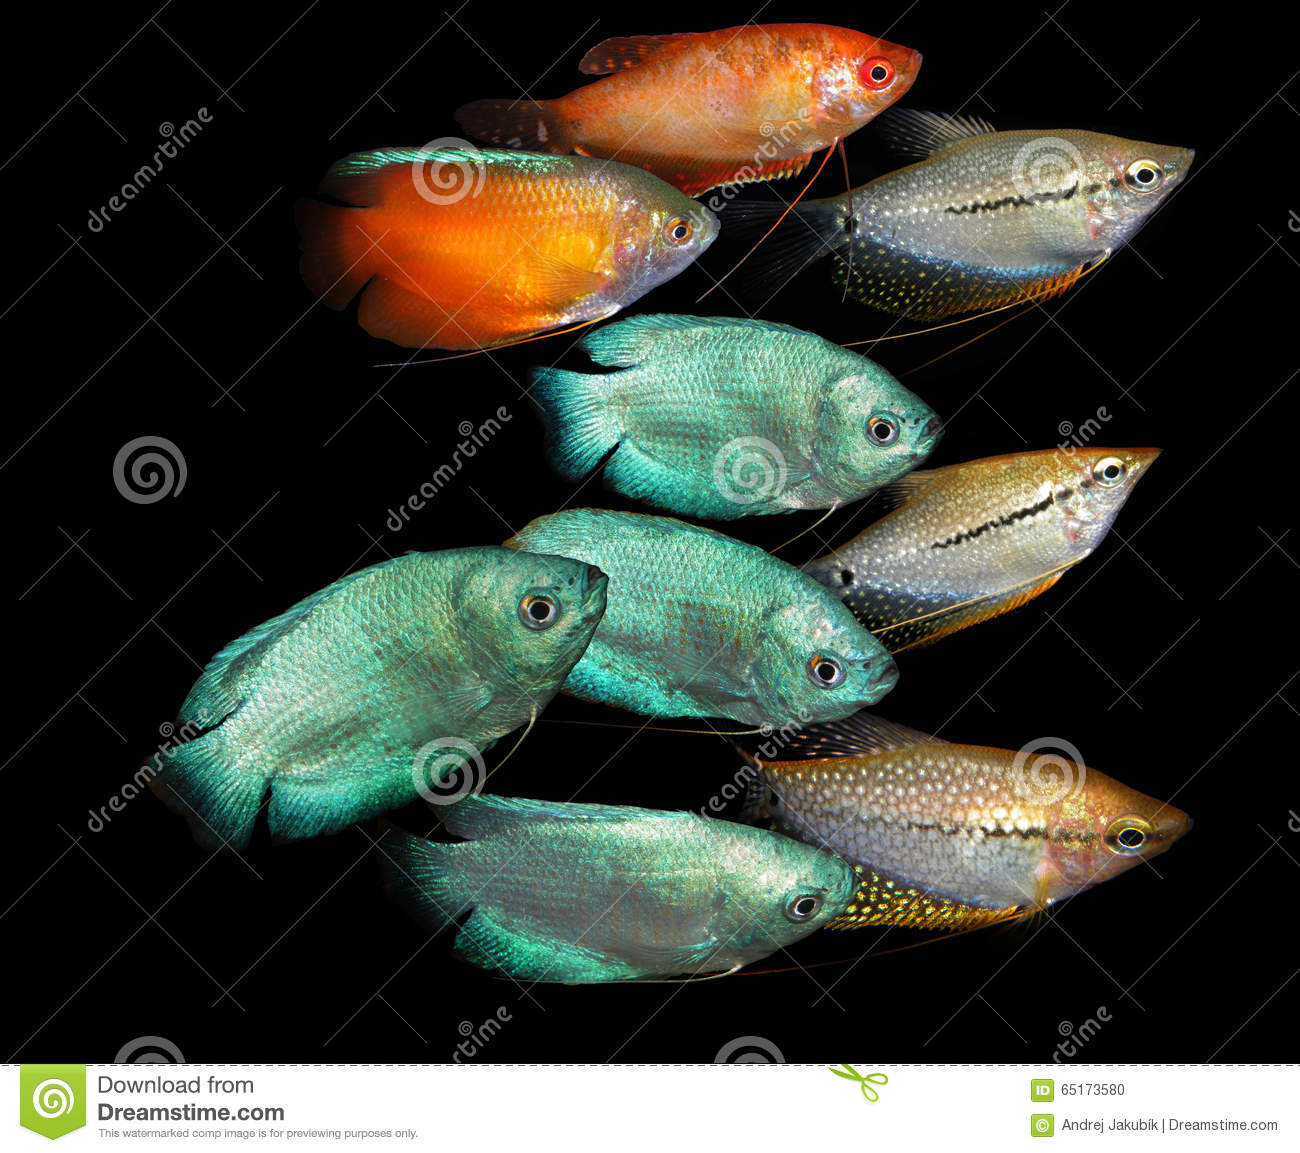 Freshwater aquarium fish from asia - Aquarium Fish Anabantoidae Family